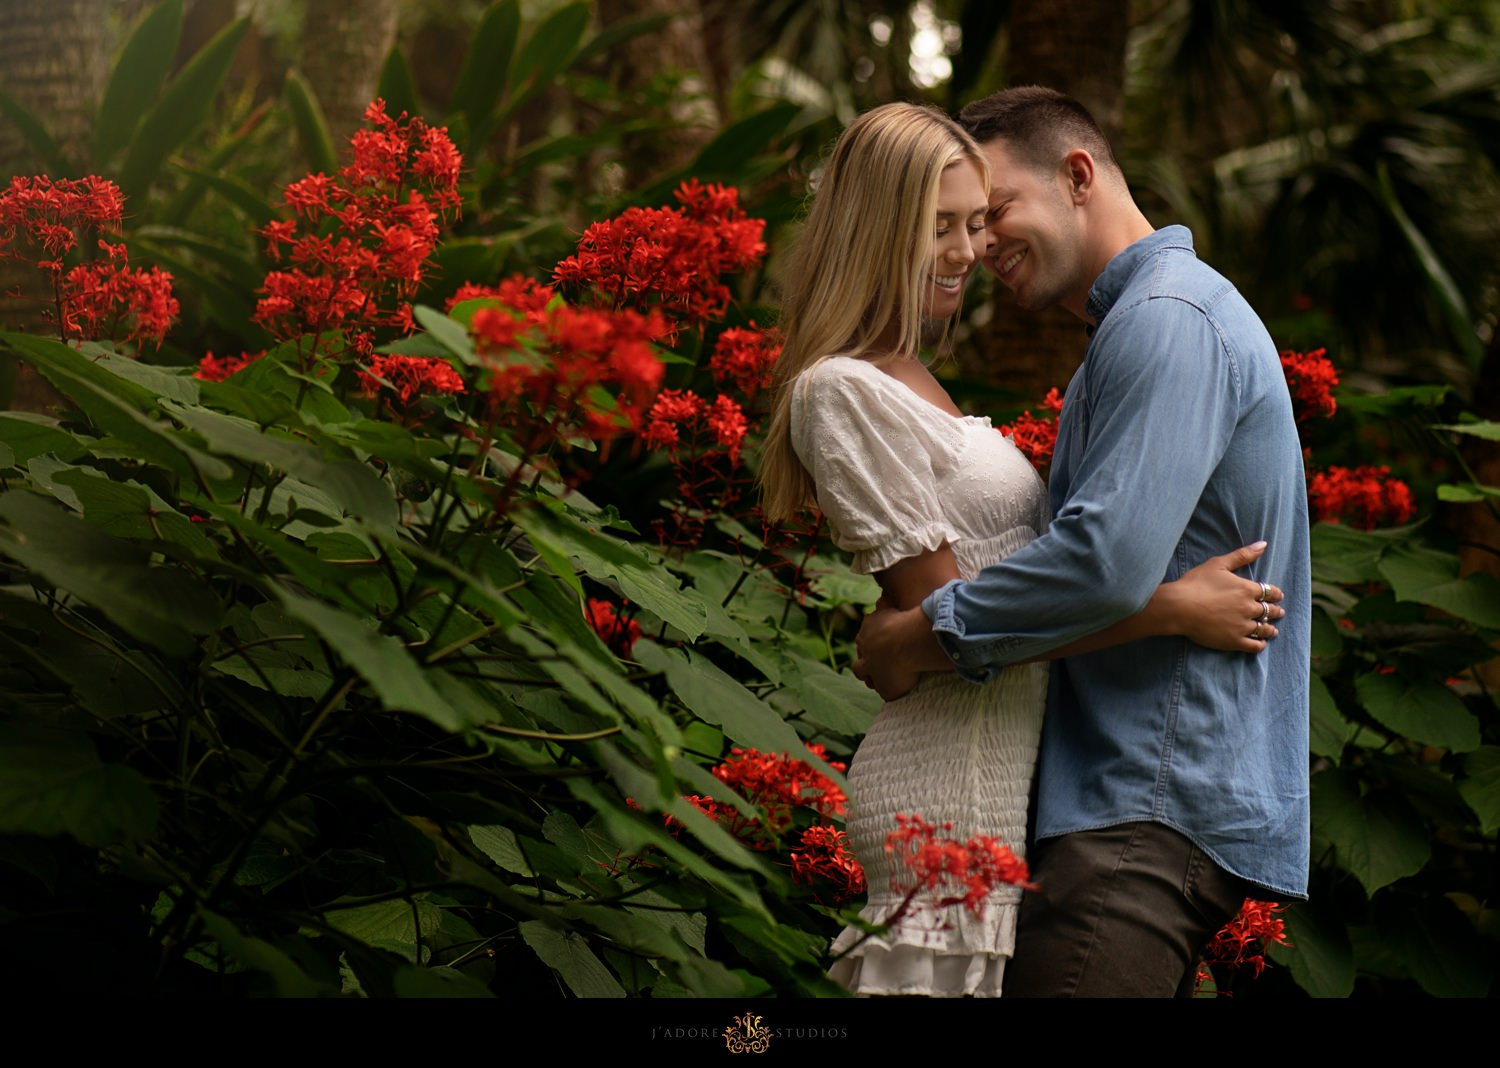 Groom to be kissing bride to be's cheek near red flowers